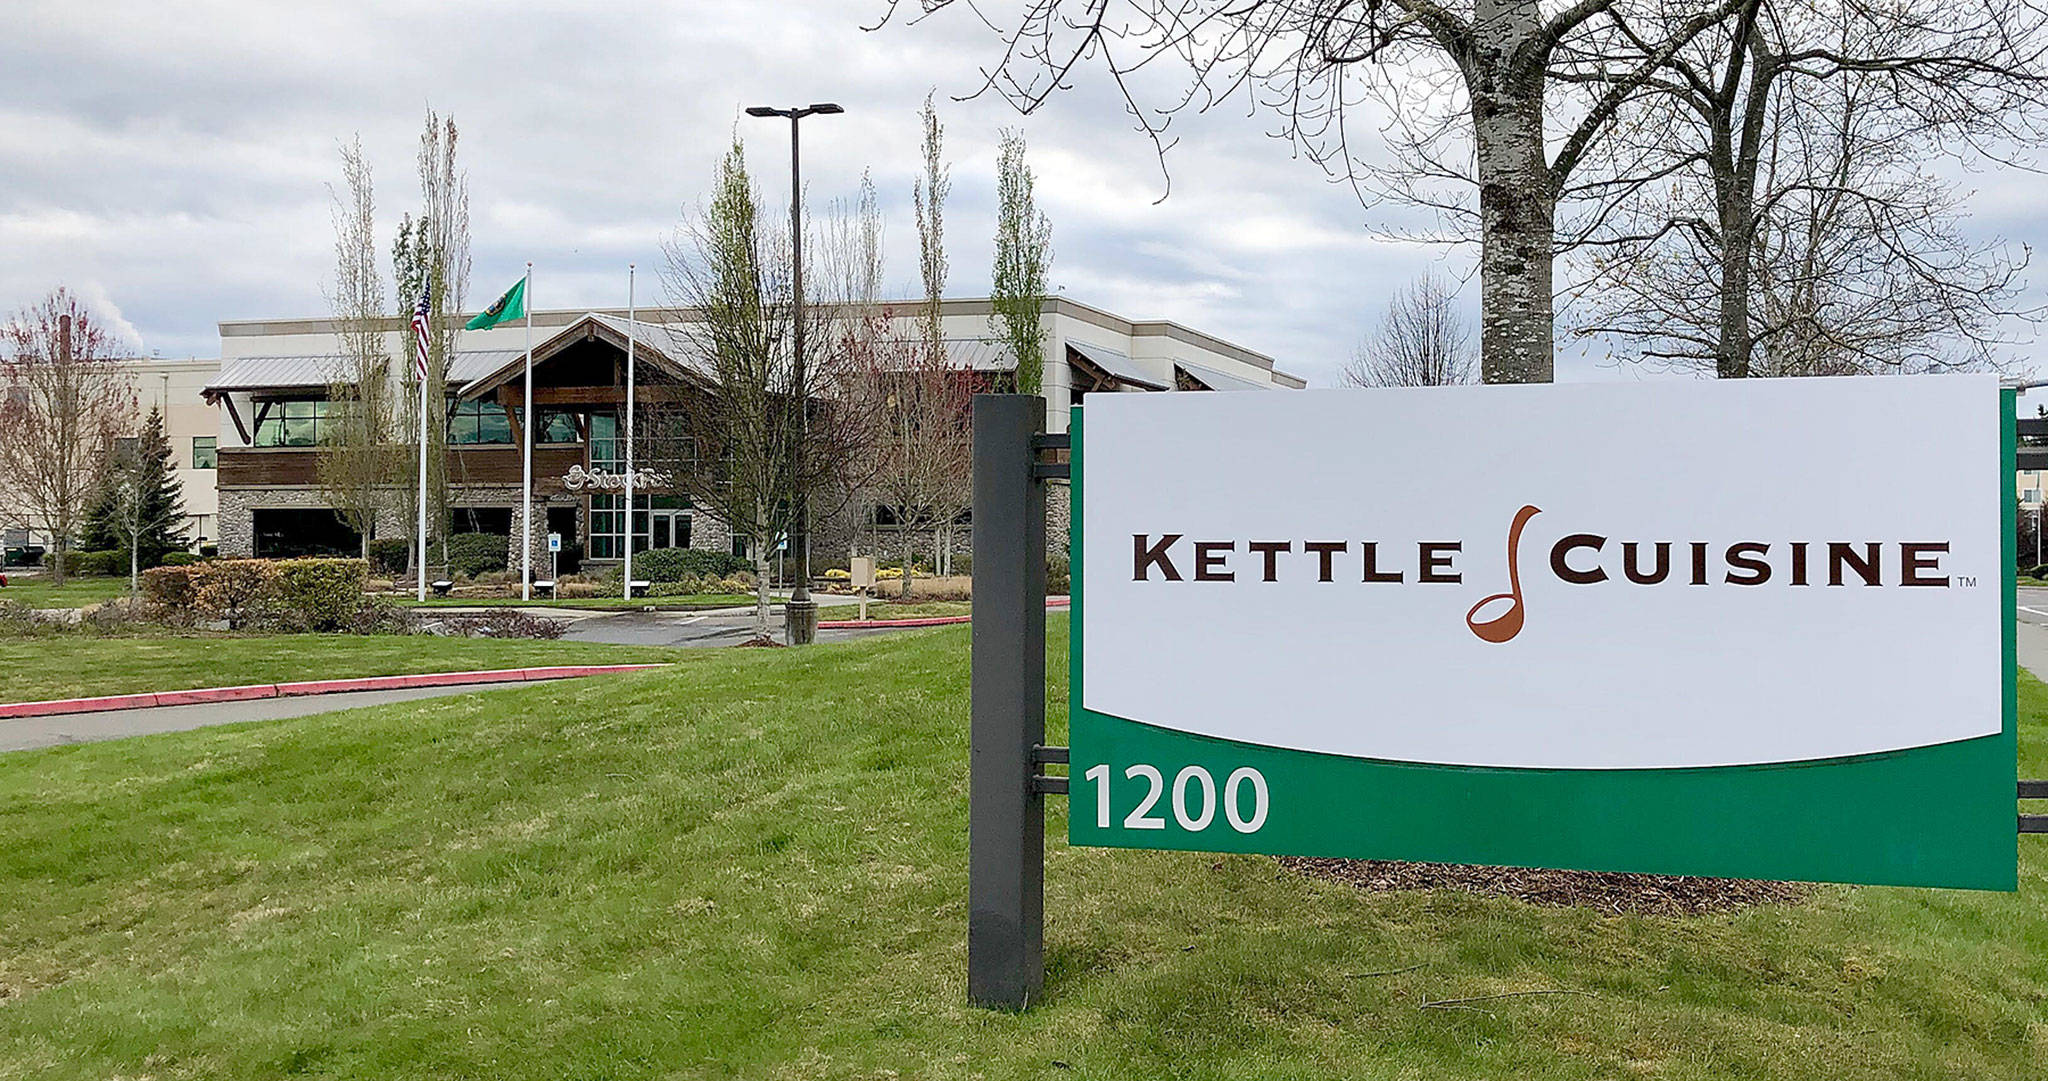 A new sign reflects new ownership, by Kettle Cuisine, at the former StockPot Soup plant in south Everett. (Janice Podsada / The Herald)